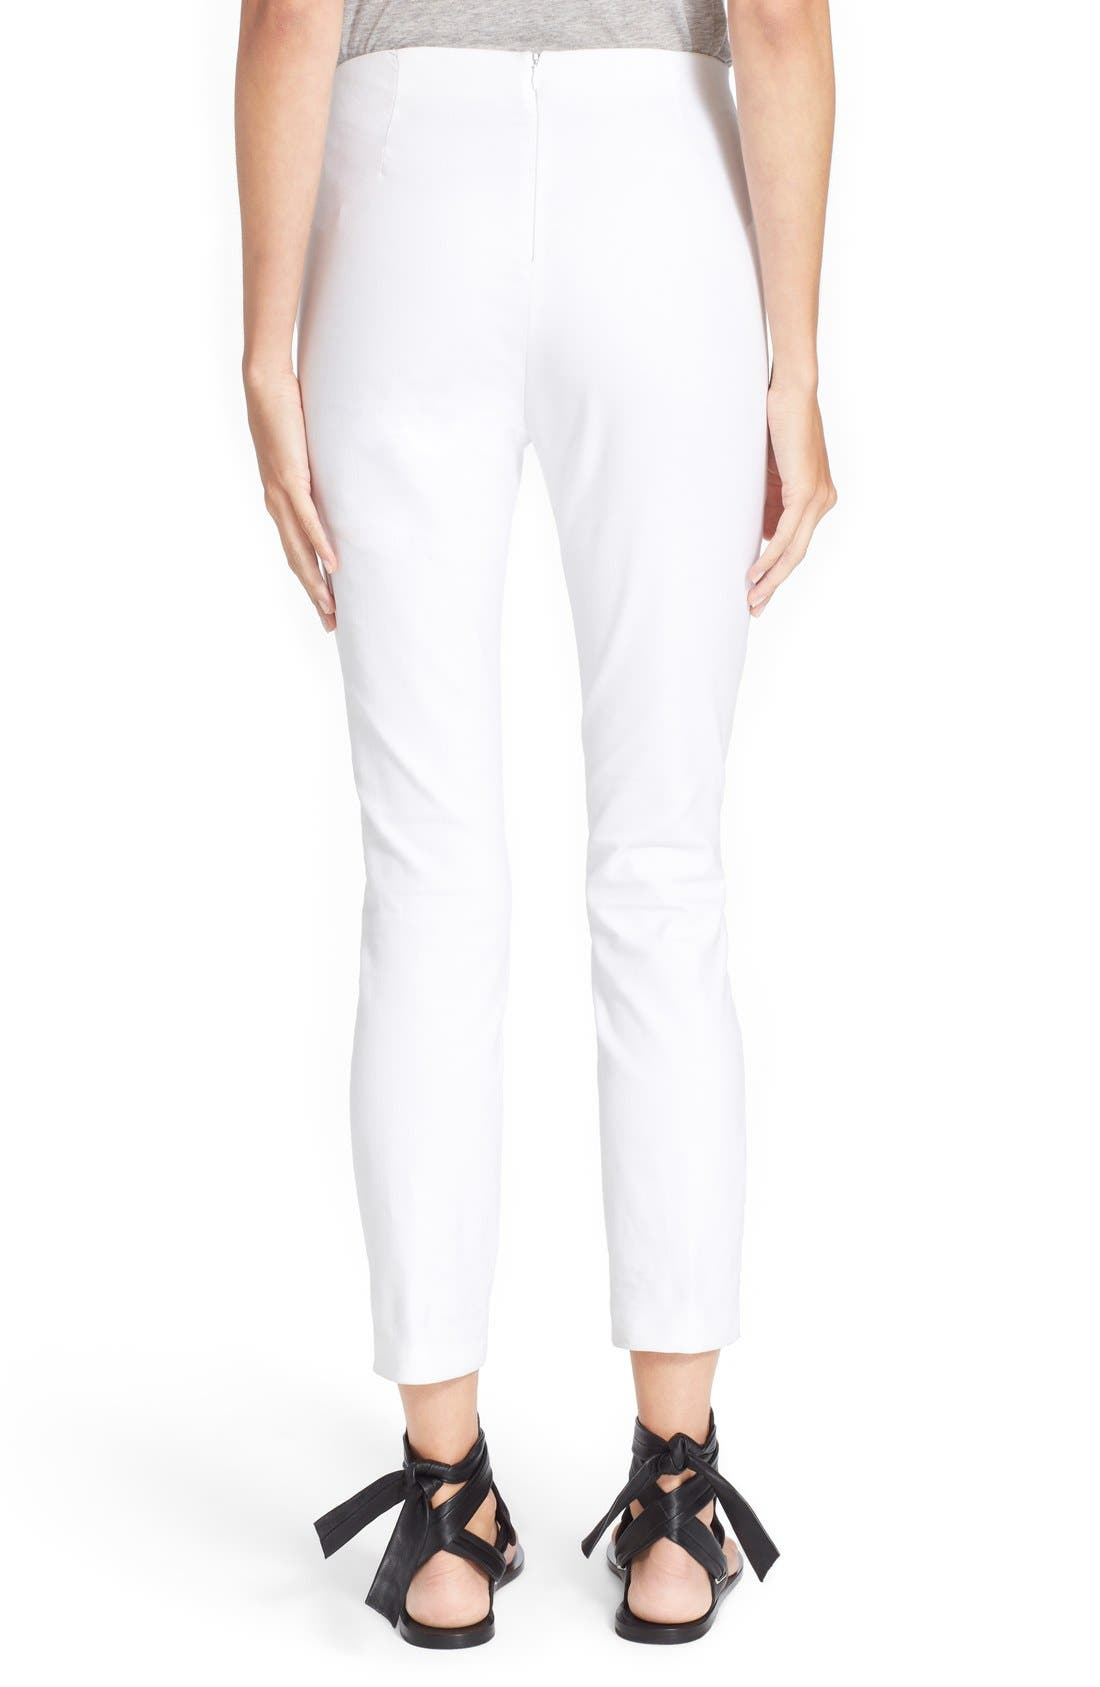 RAG & BONE, 'Simone' Slim Ankle Pants, Alternate thumbnail 13, color, WHITE